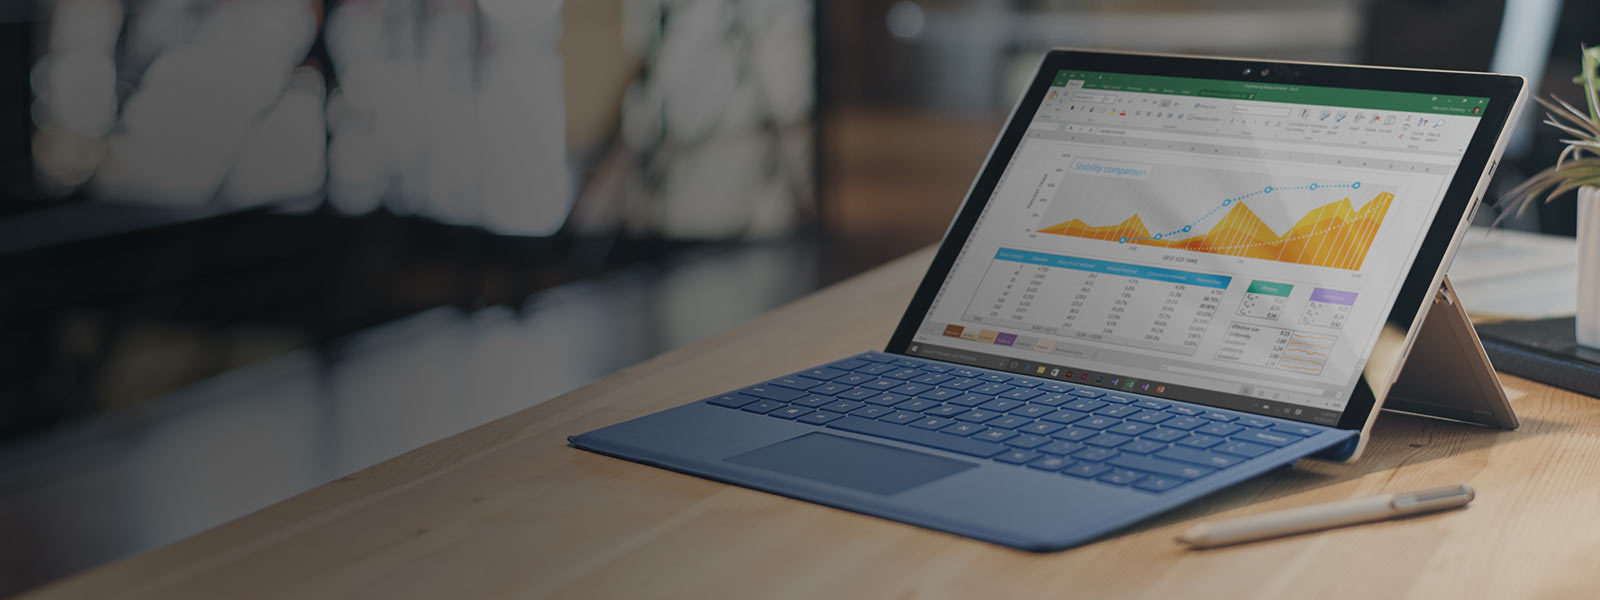 A Surface Pro 4 with keyboard and Surface Pen